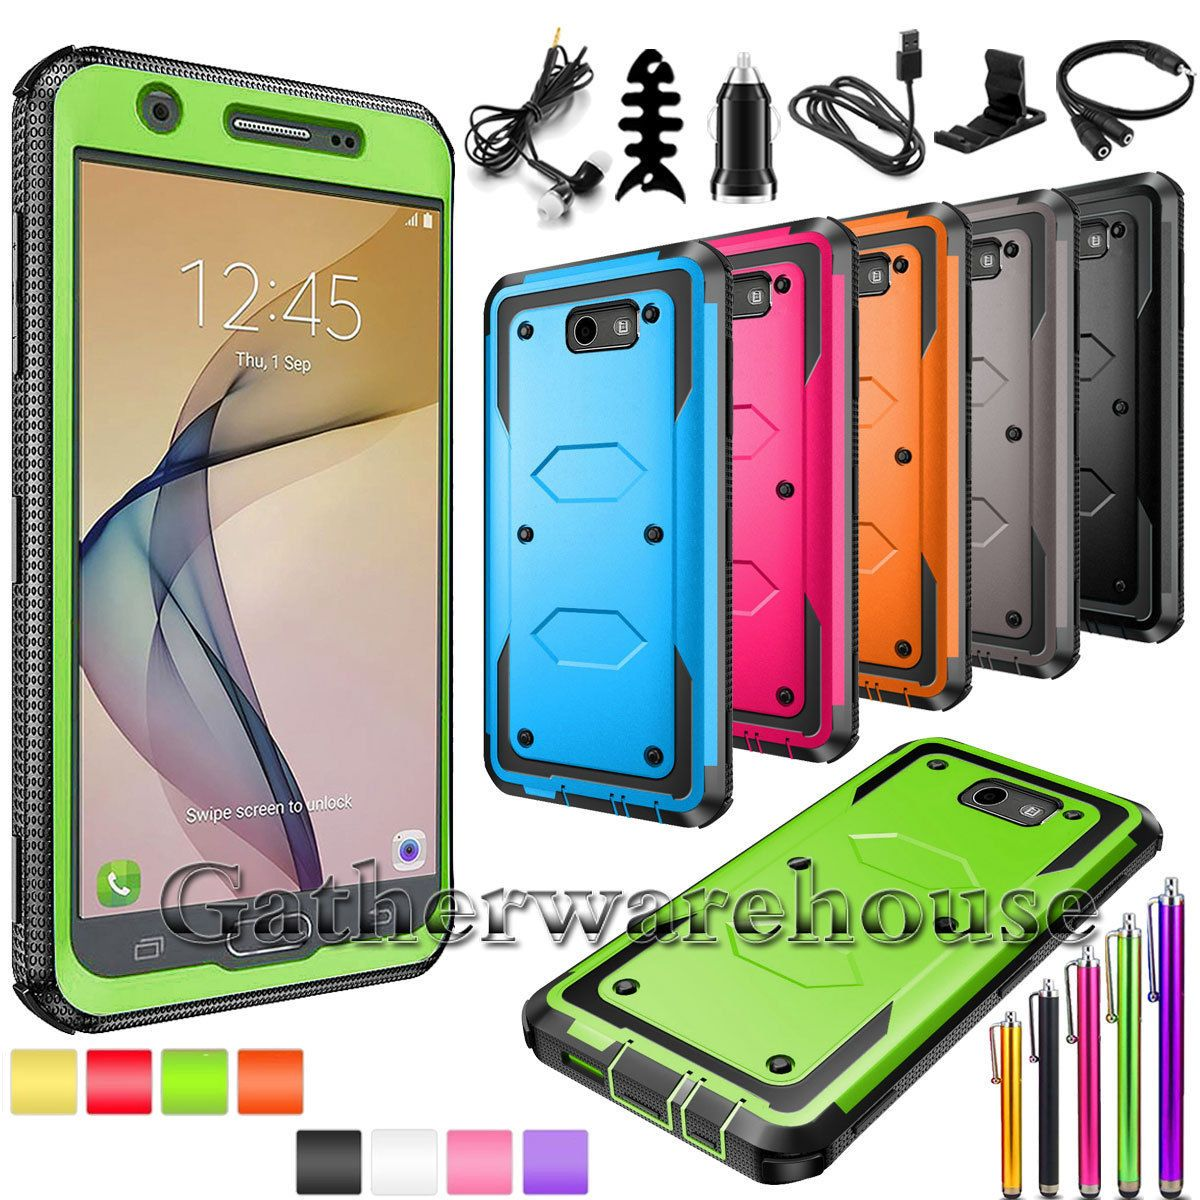 Details about Hybrid Hard Case Cover For Samsung Galaxy J7 V 2017